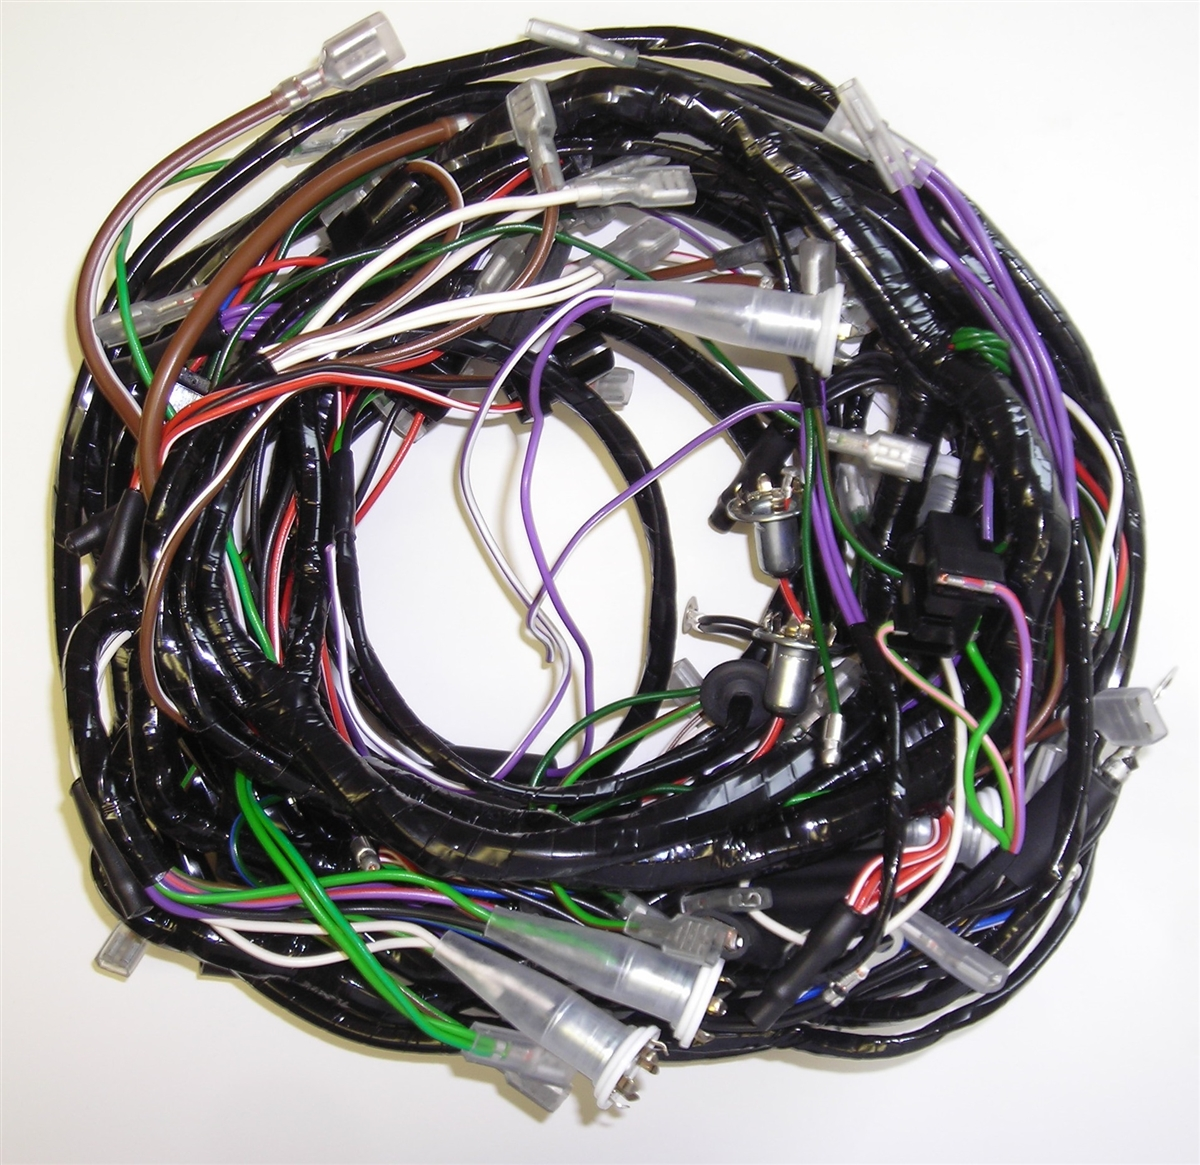 890 2?1399282067 wiring harness triumph tr6 dan masters wiring harness at edmiracle.co